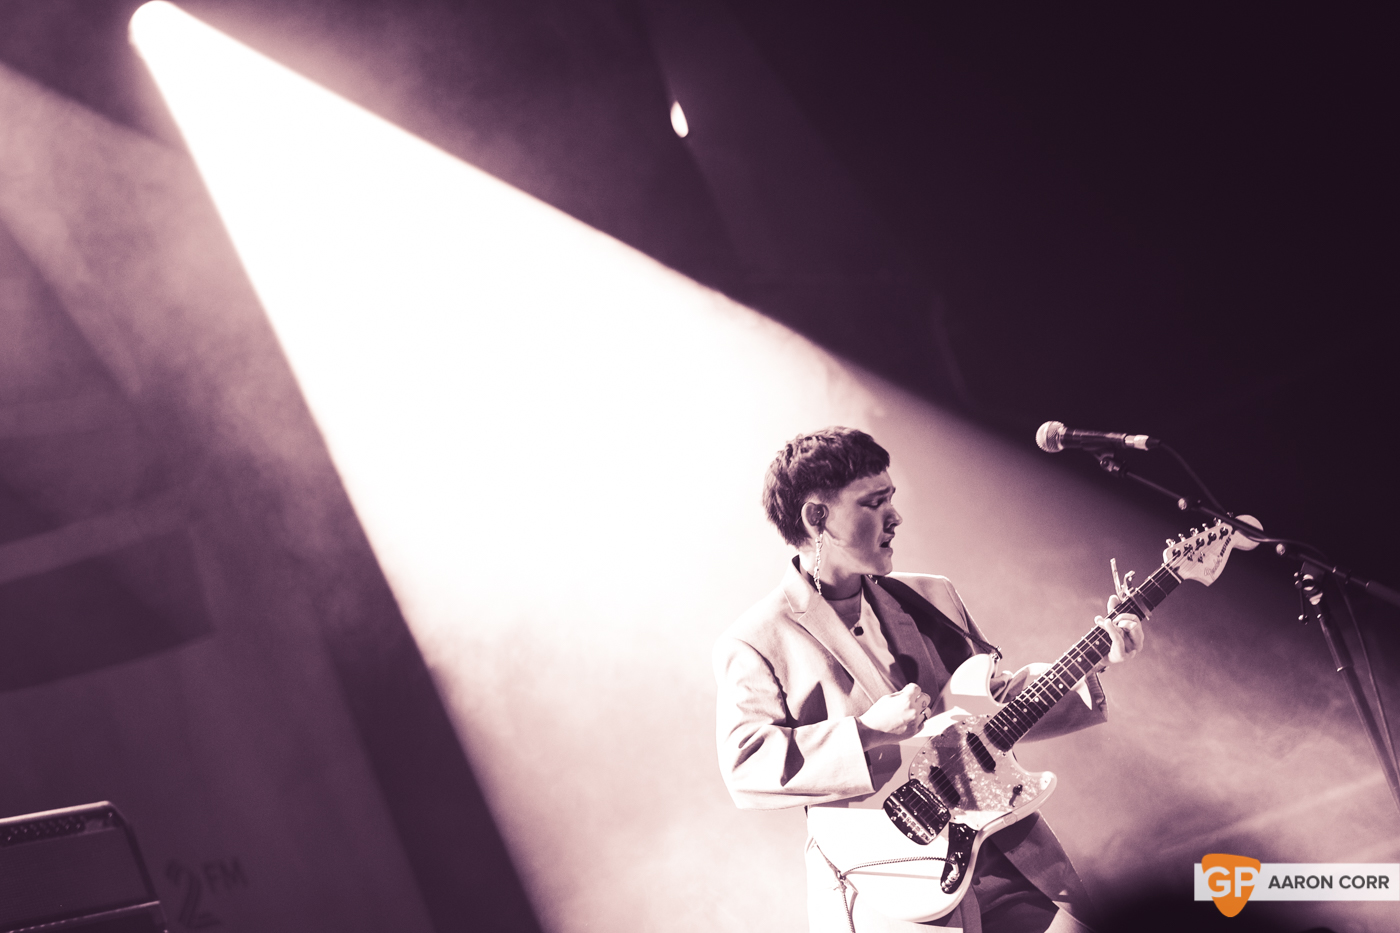 Soak at Choice Music Prize 2020 in Vicar Street, Dublin on 05-Mar-20 by Aaron Corr-5008